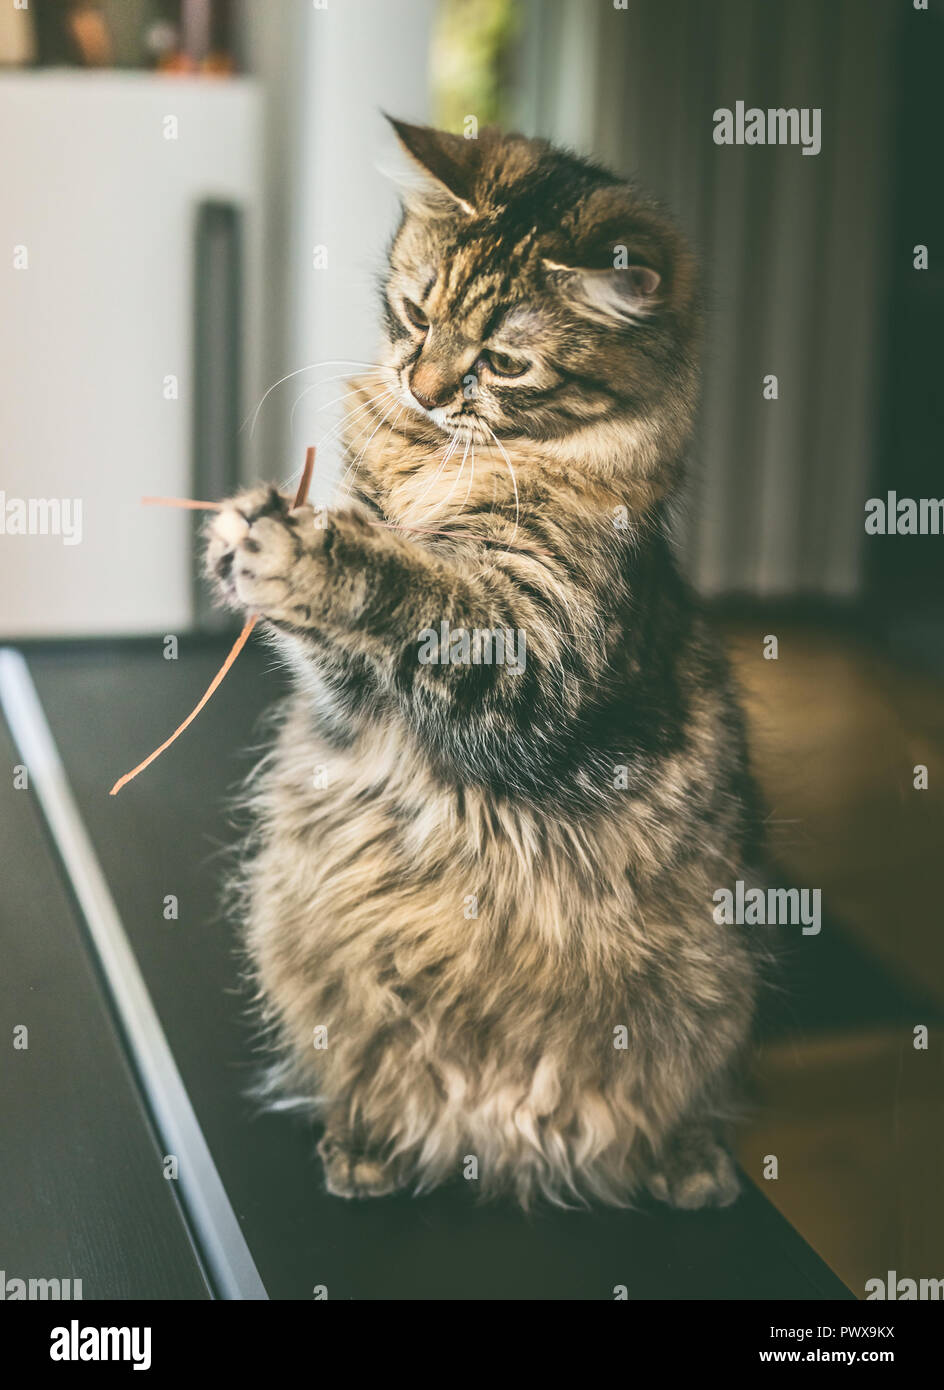 Funny fluffy cat sits on its hind legs and holds dried  grass in its front paws, indoor. Cat  plays - Stock Image